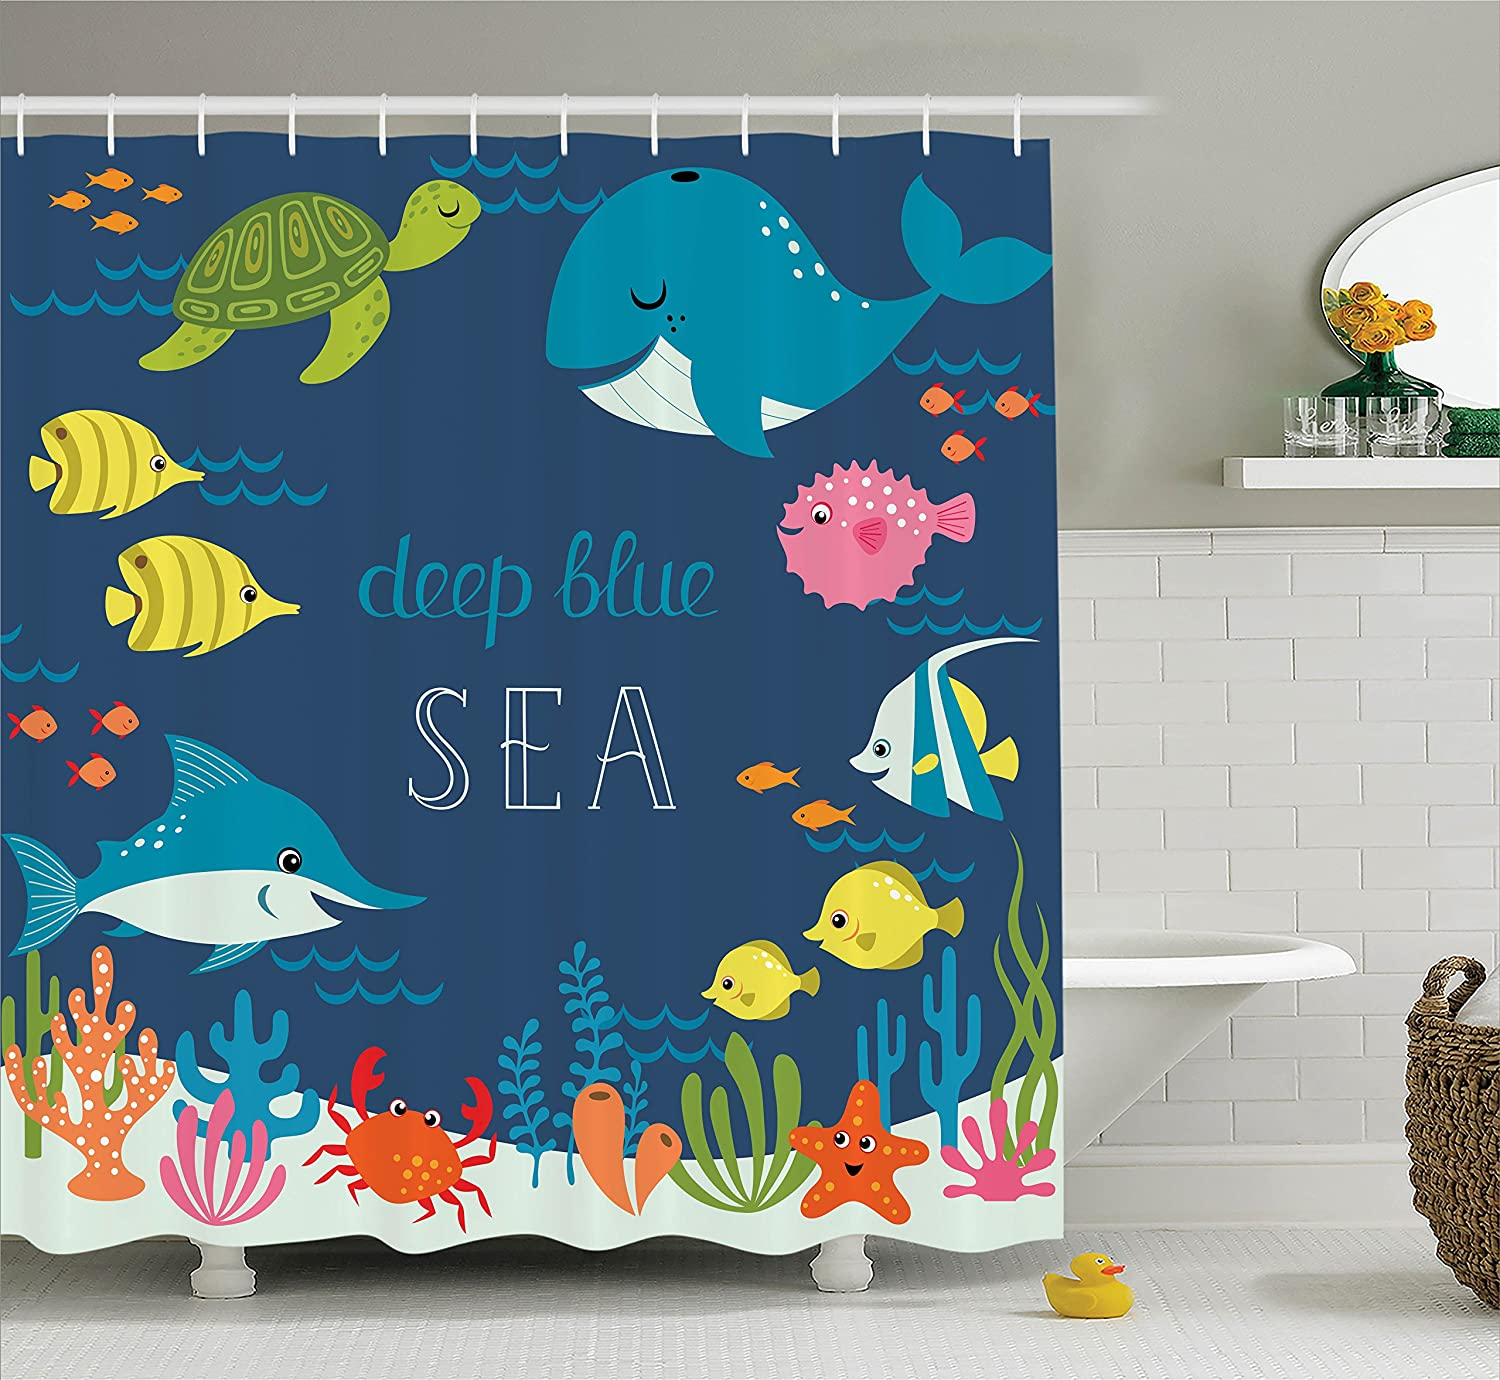 Ambesonne Cartoon Shower Curtain, Artsy Underwater Graphic with Algaes Coral Reefs Turtles Fishes The Life Aquatic, Fabric Bathroom Decor Set with Hooks, 75 Inches Long, Multicolor